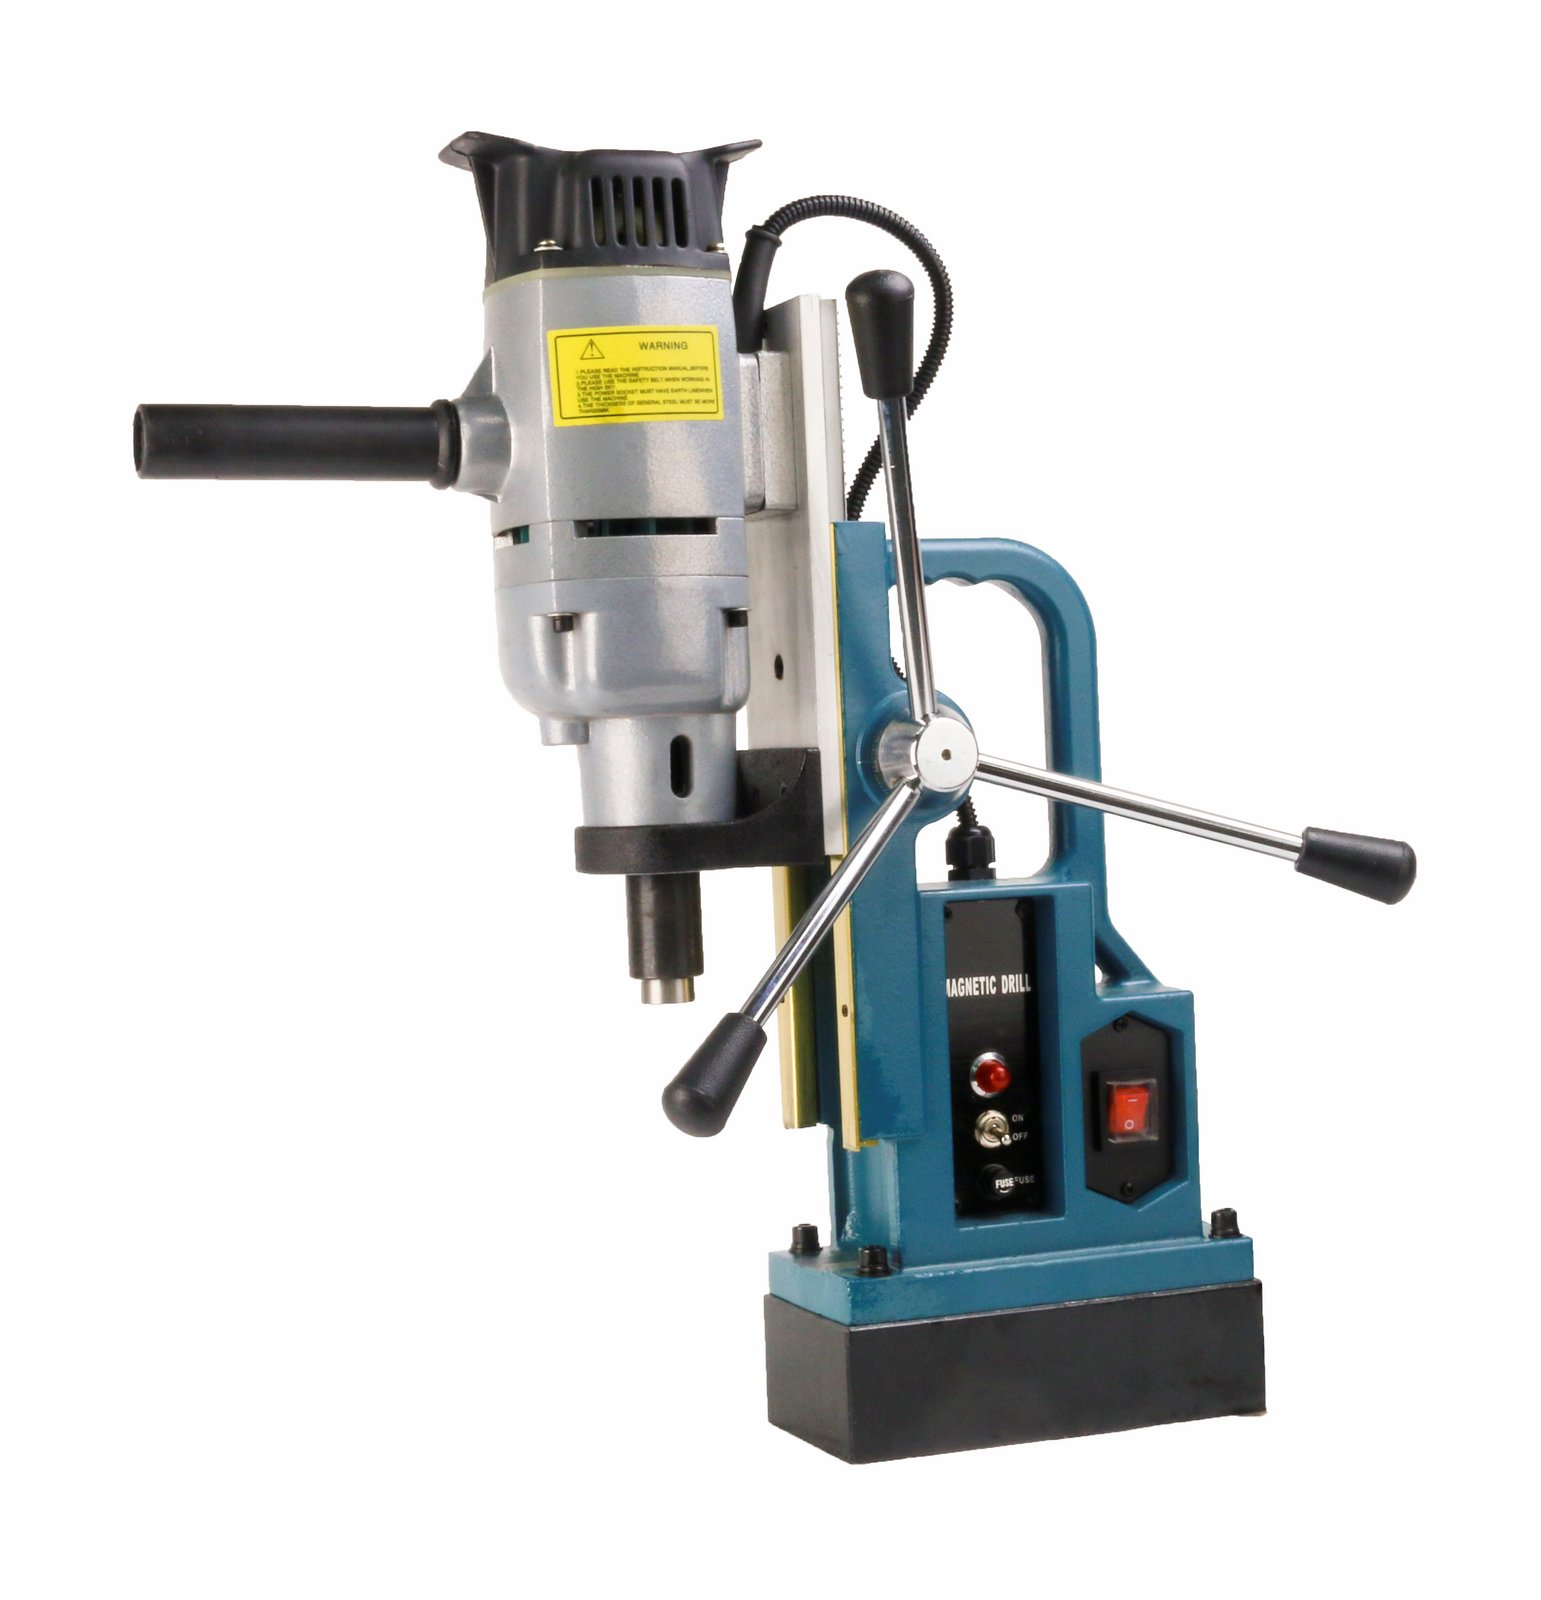 SDT MD103 1�� Magnetic Drill Press with MT3 Spindle Taper and 1350 W Motor